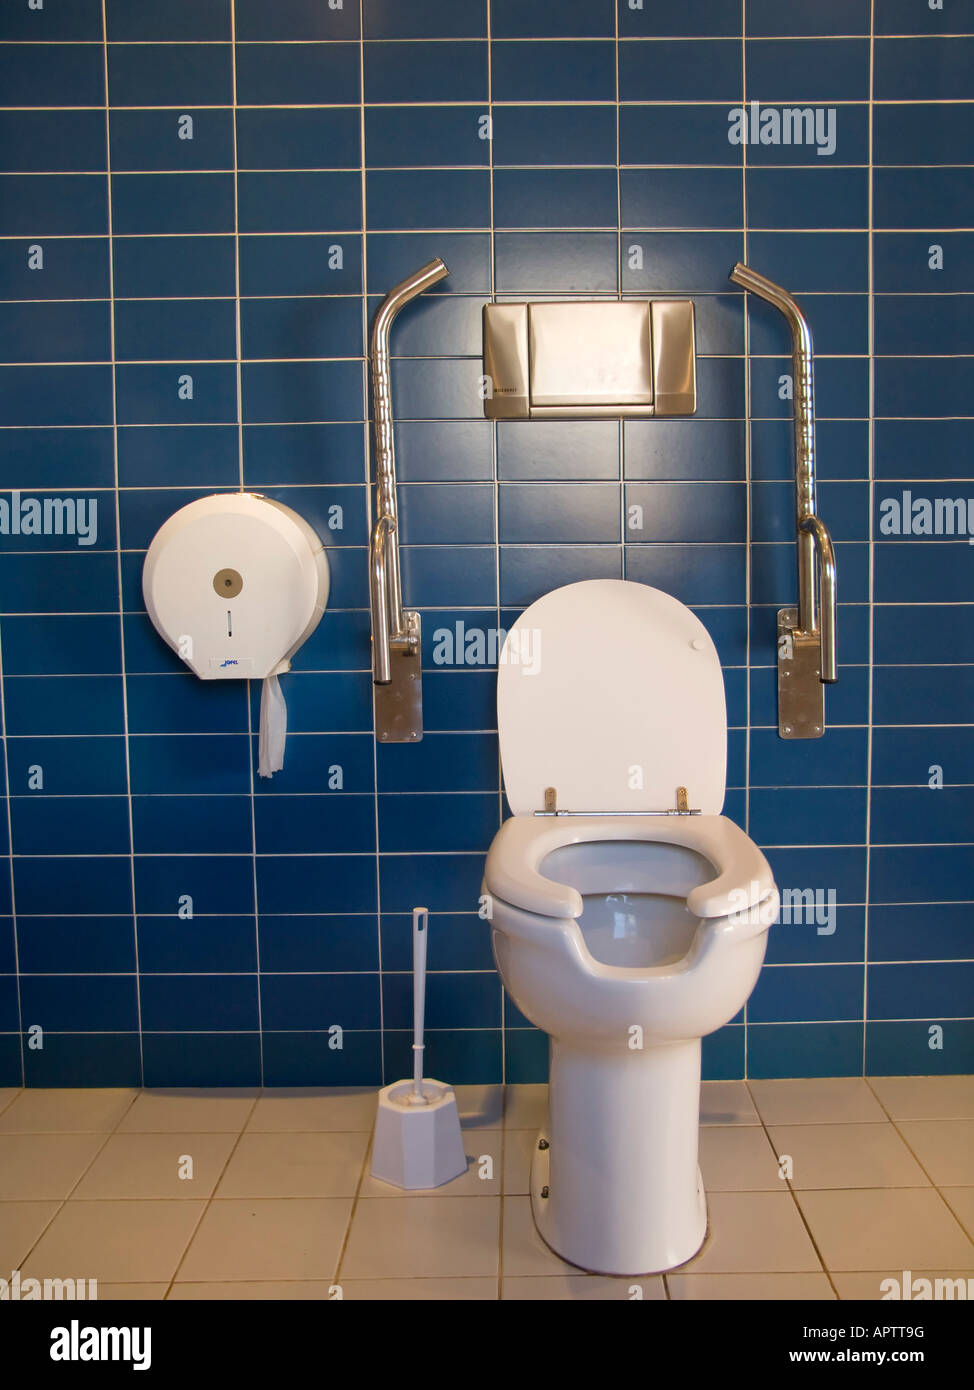 Public toilet with handrails for disabled people Stock Photo ...